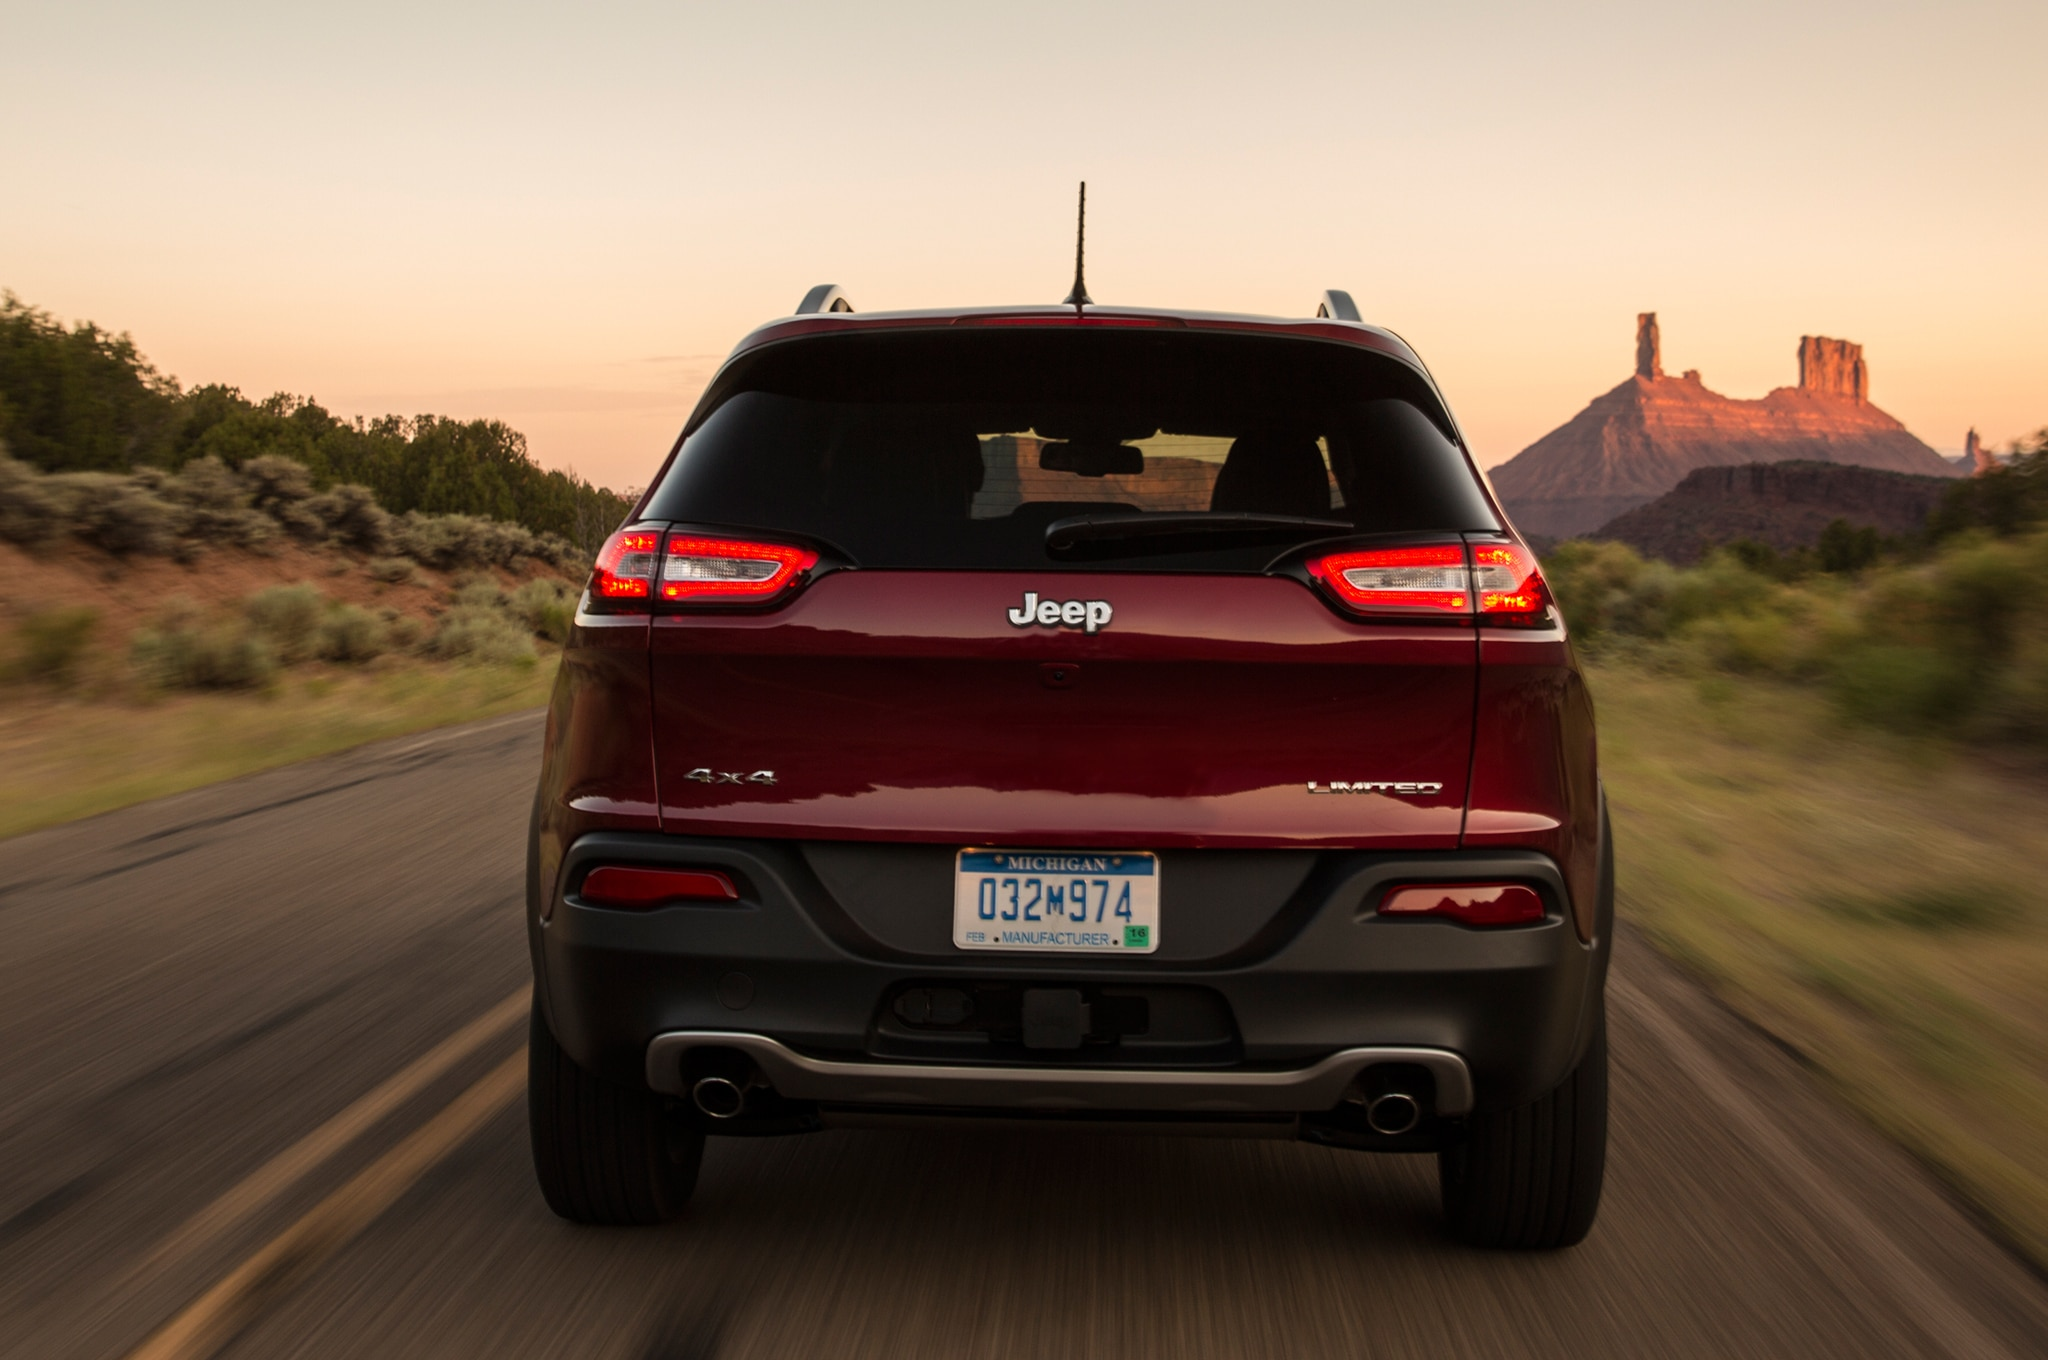 2014 Jeep Cherokee Limited rear profile in motion